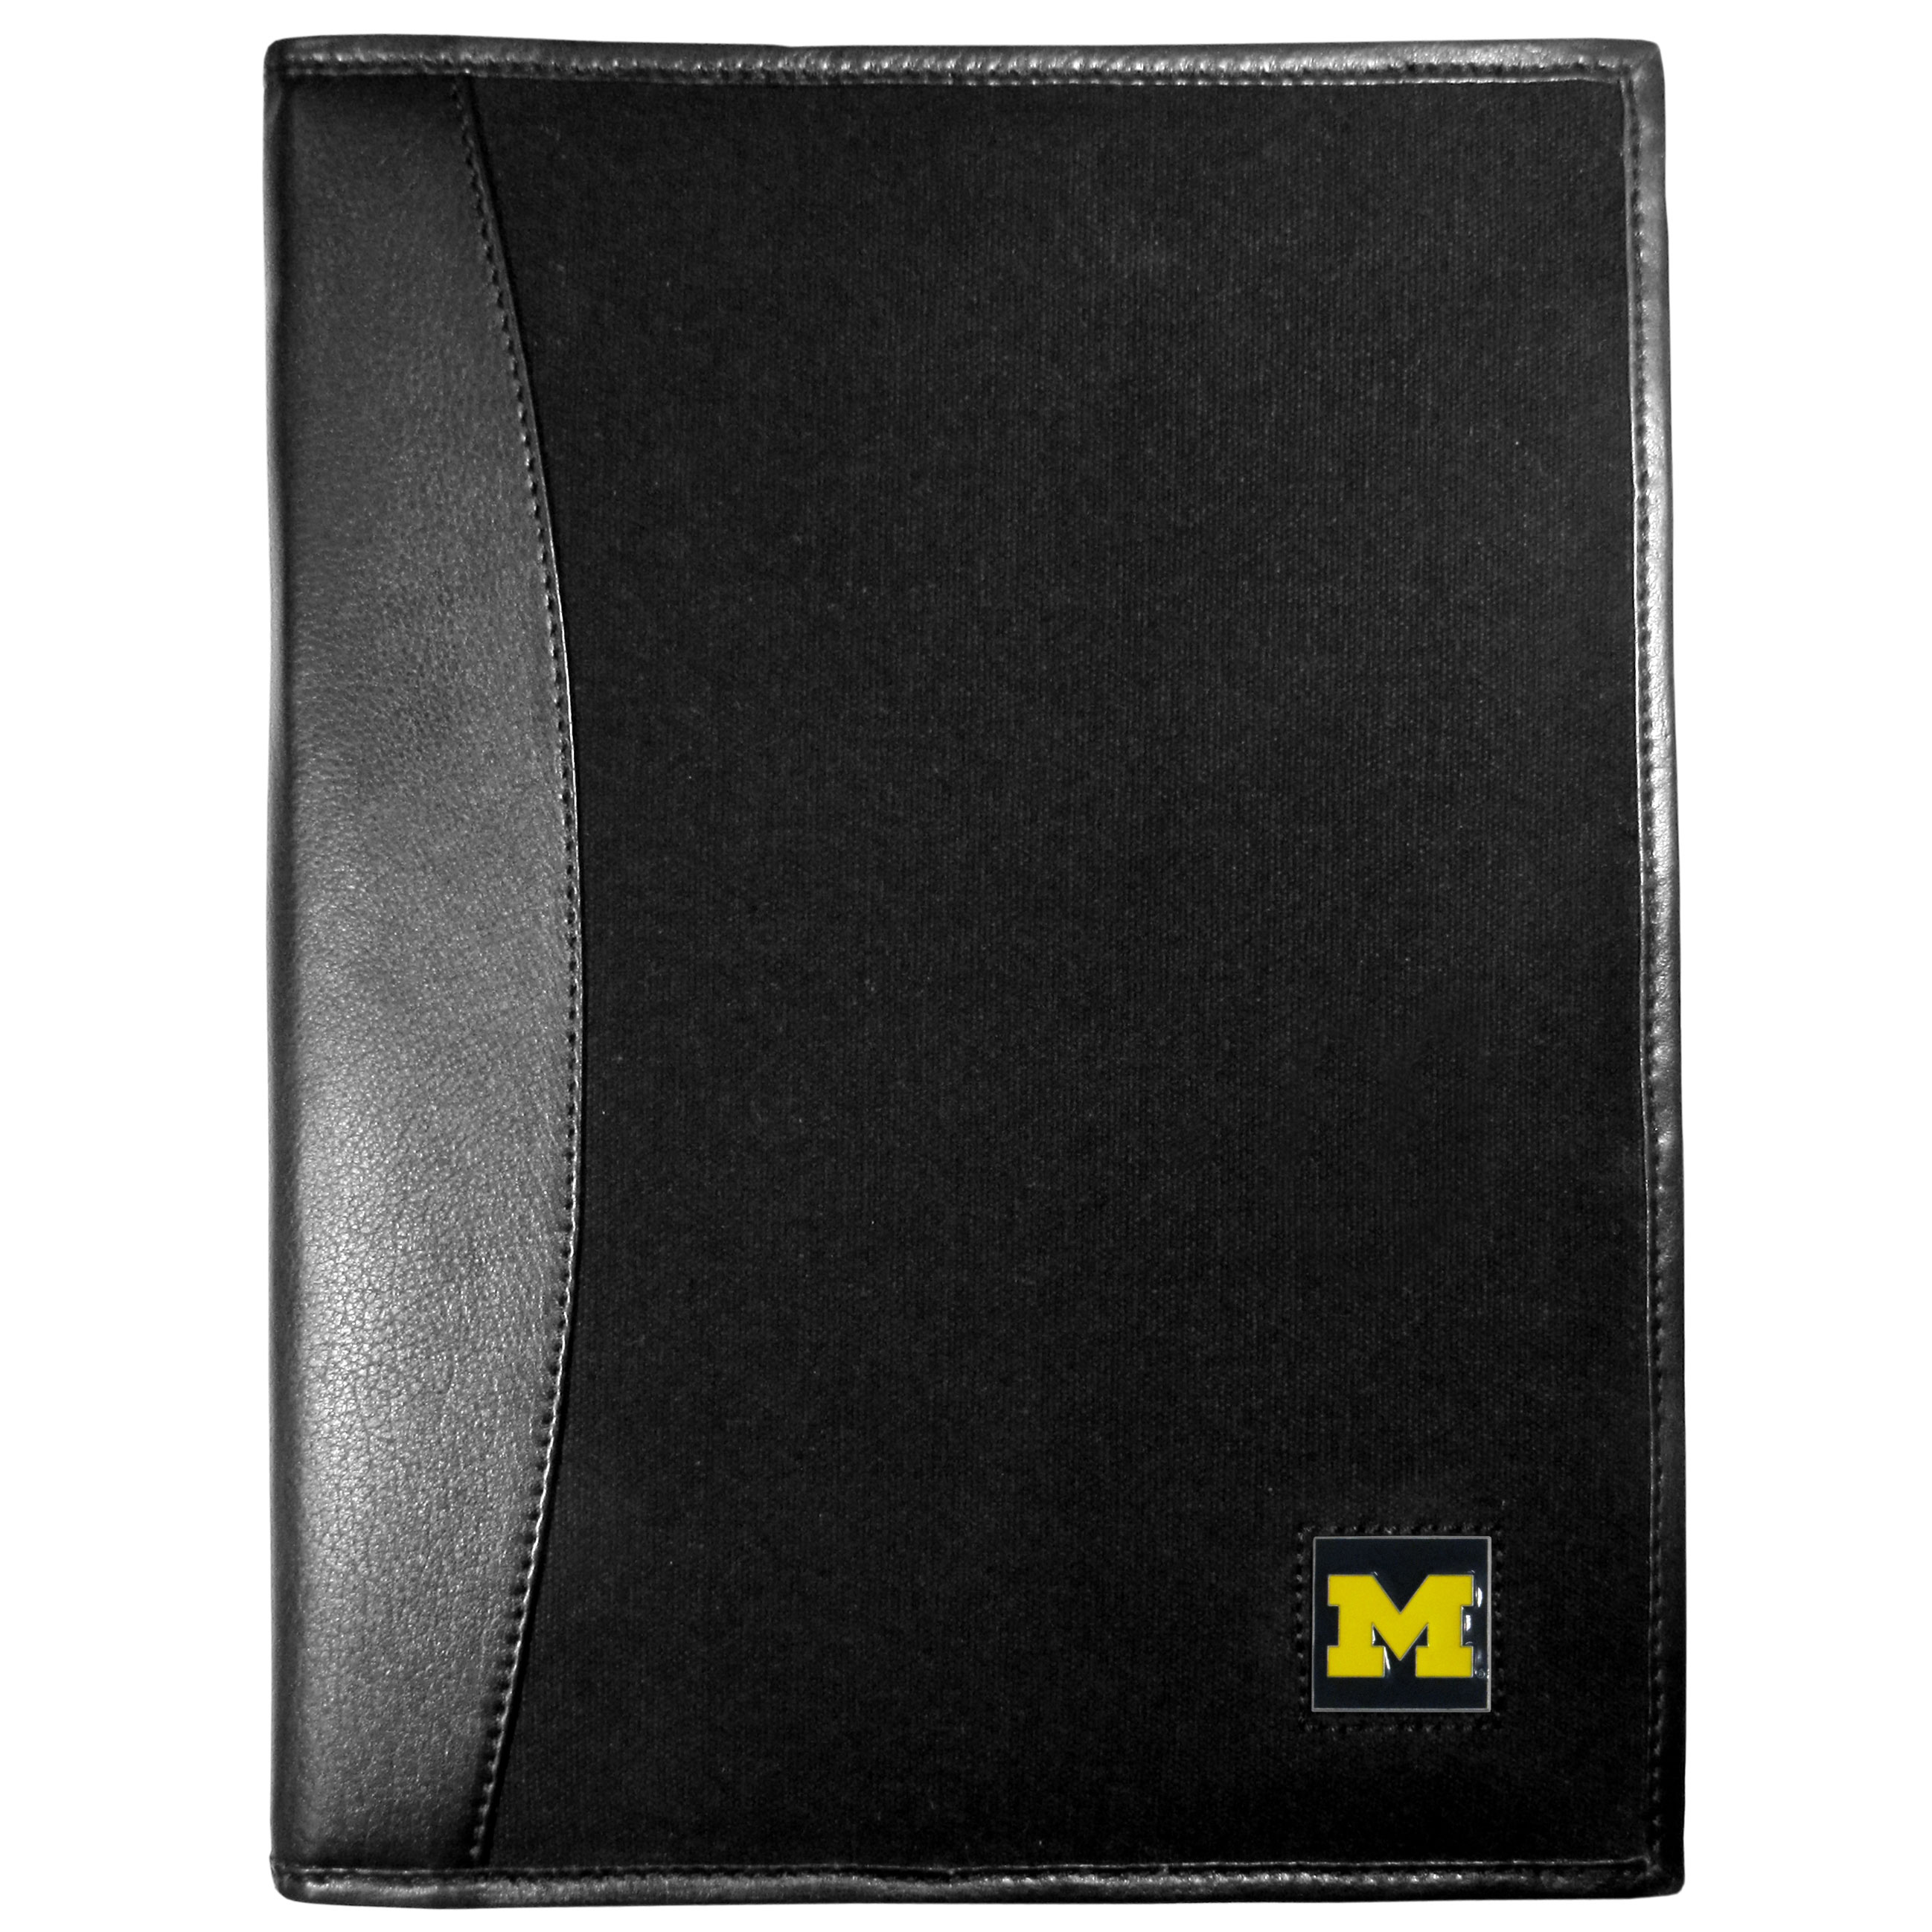 Michigan Wolverines Leather and Canvas Padfolio - Our leather and canvas padfolio perfectly blends form and function. The attractive portfolio is bound in fine grain leather with an attractive canvas finish and the interior is a soft nylon. This high quality business accessory also features a fully cast metal Michigan Wolverines emblem that is subtly set in the corner of the organizer. It is packed with features like 6 card slots for badges, business cards, hotel keys or credit cards and ID with a large pocket for loose papers and a writing tablet slot making it a must-have for the professional on the go.